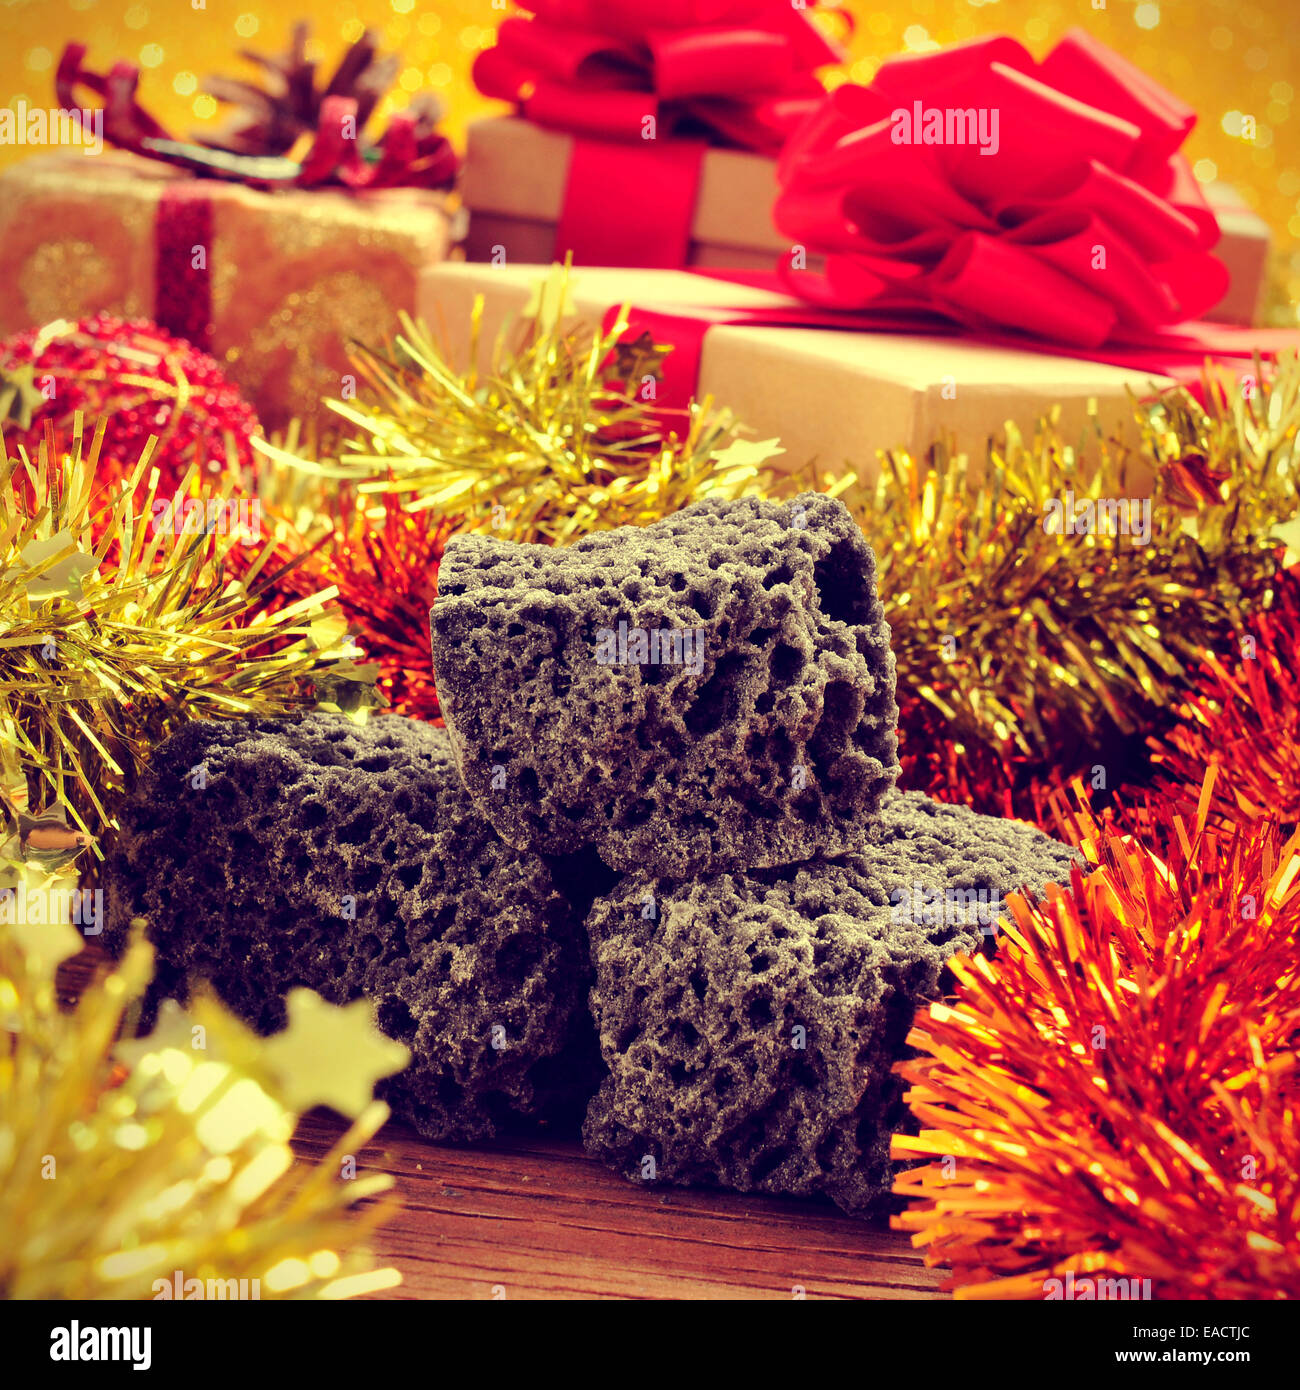 some lumps of candy coal and some christmas ornaments and gifts on a rustic wooden table, with a retro effect - Stock Image